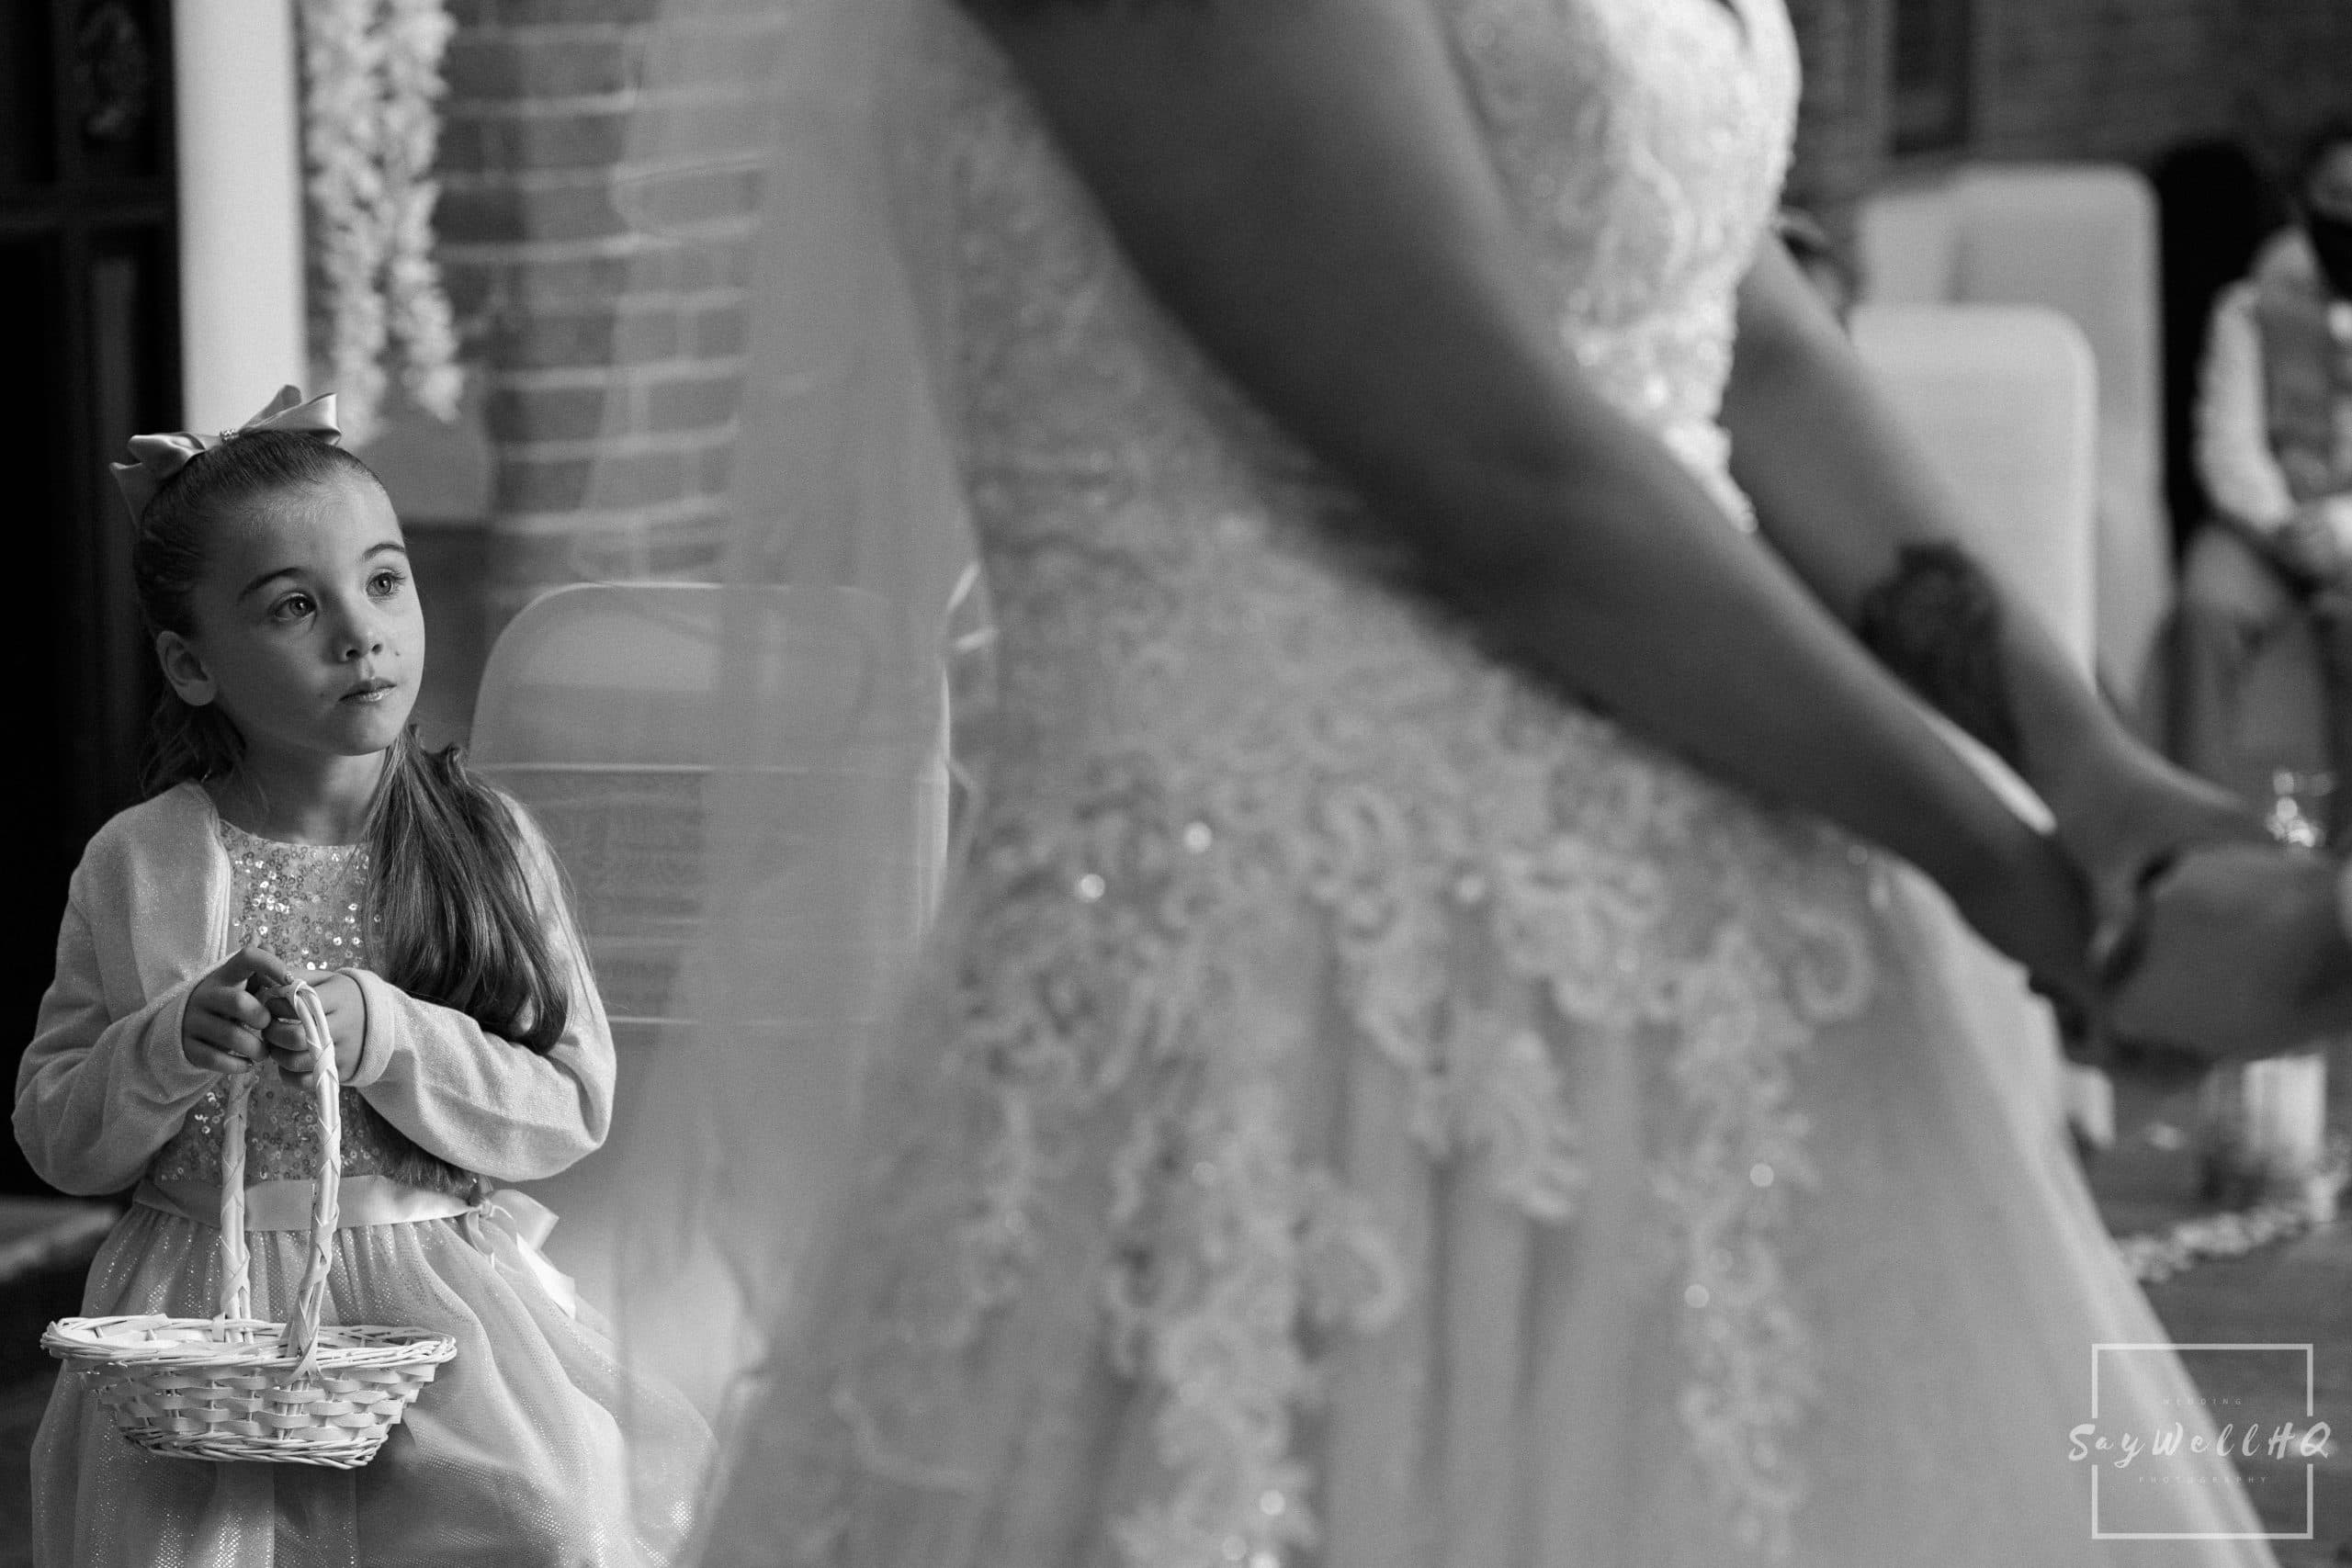 Daughter of the bride looking on at her mum getting married during a covid 19 restricted wedding